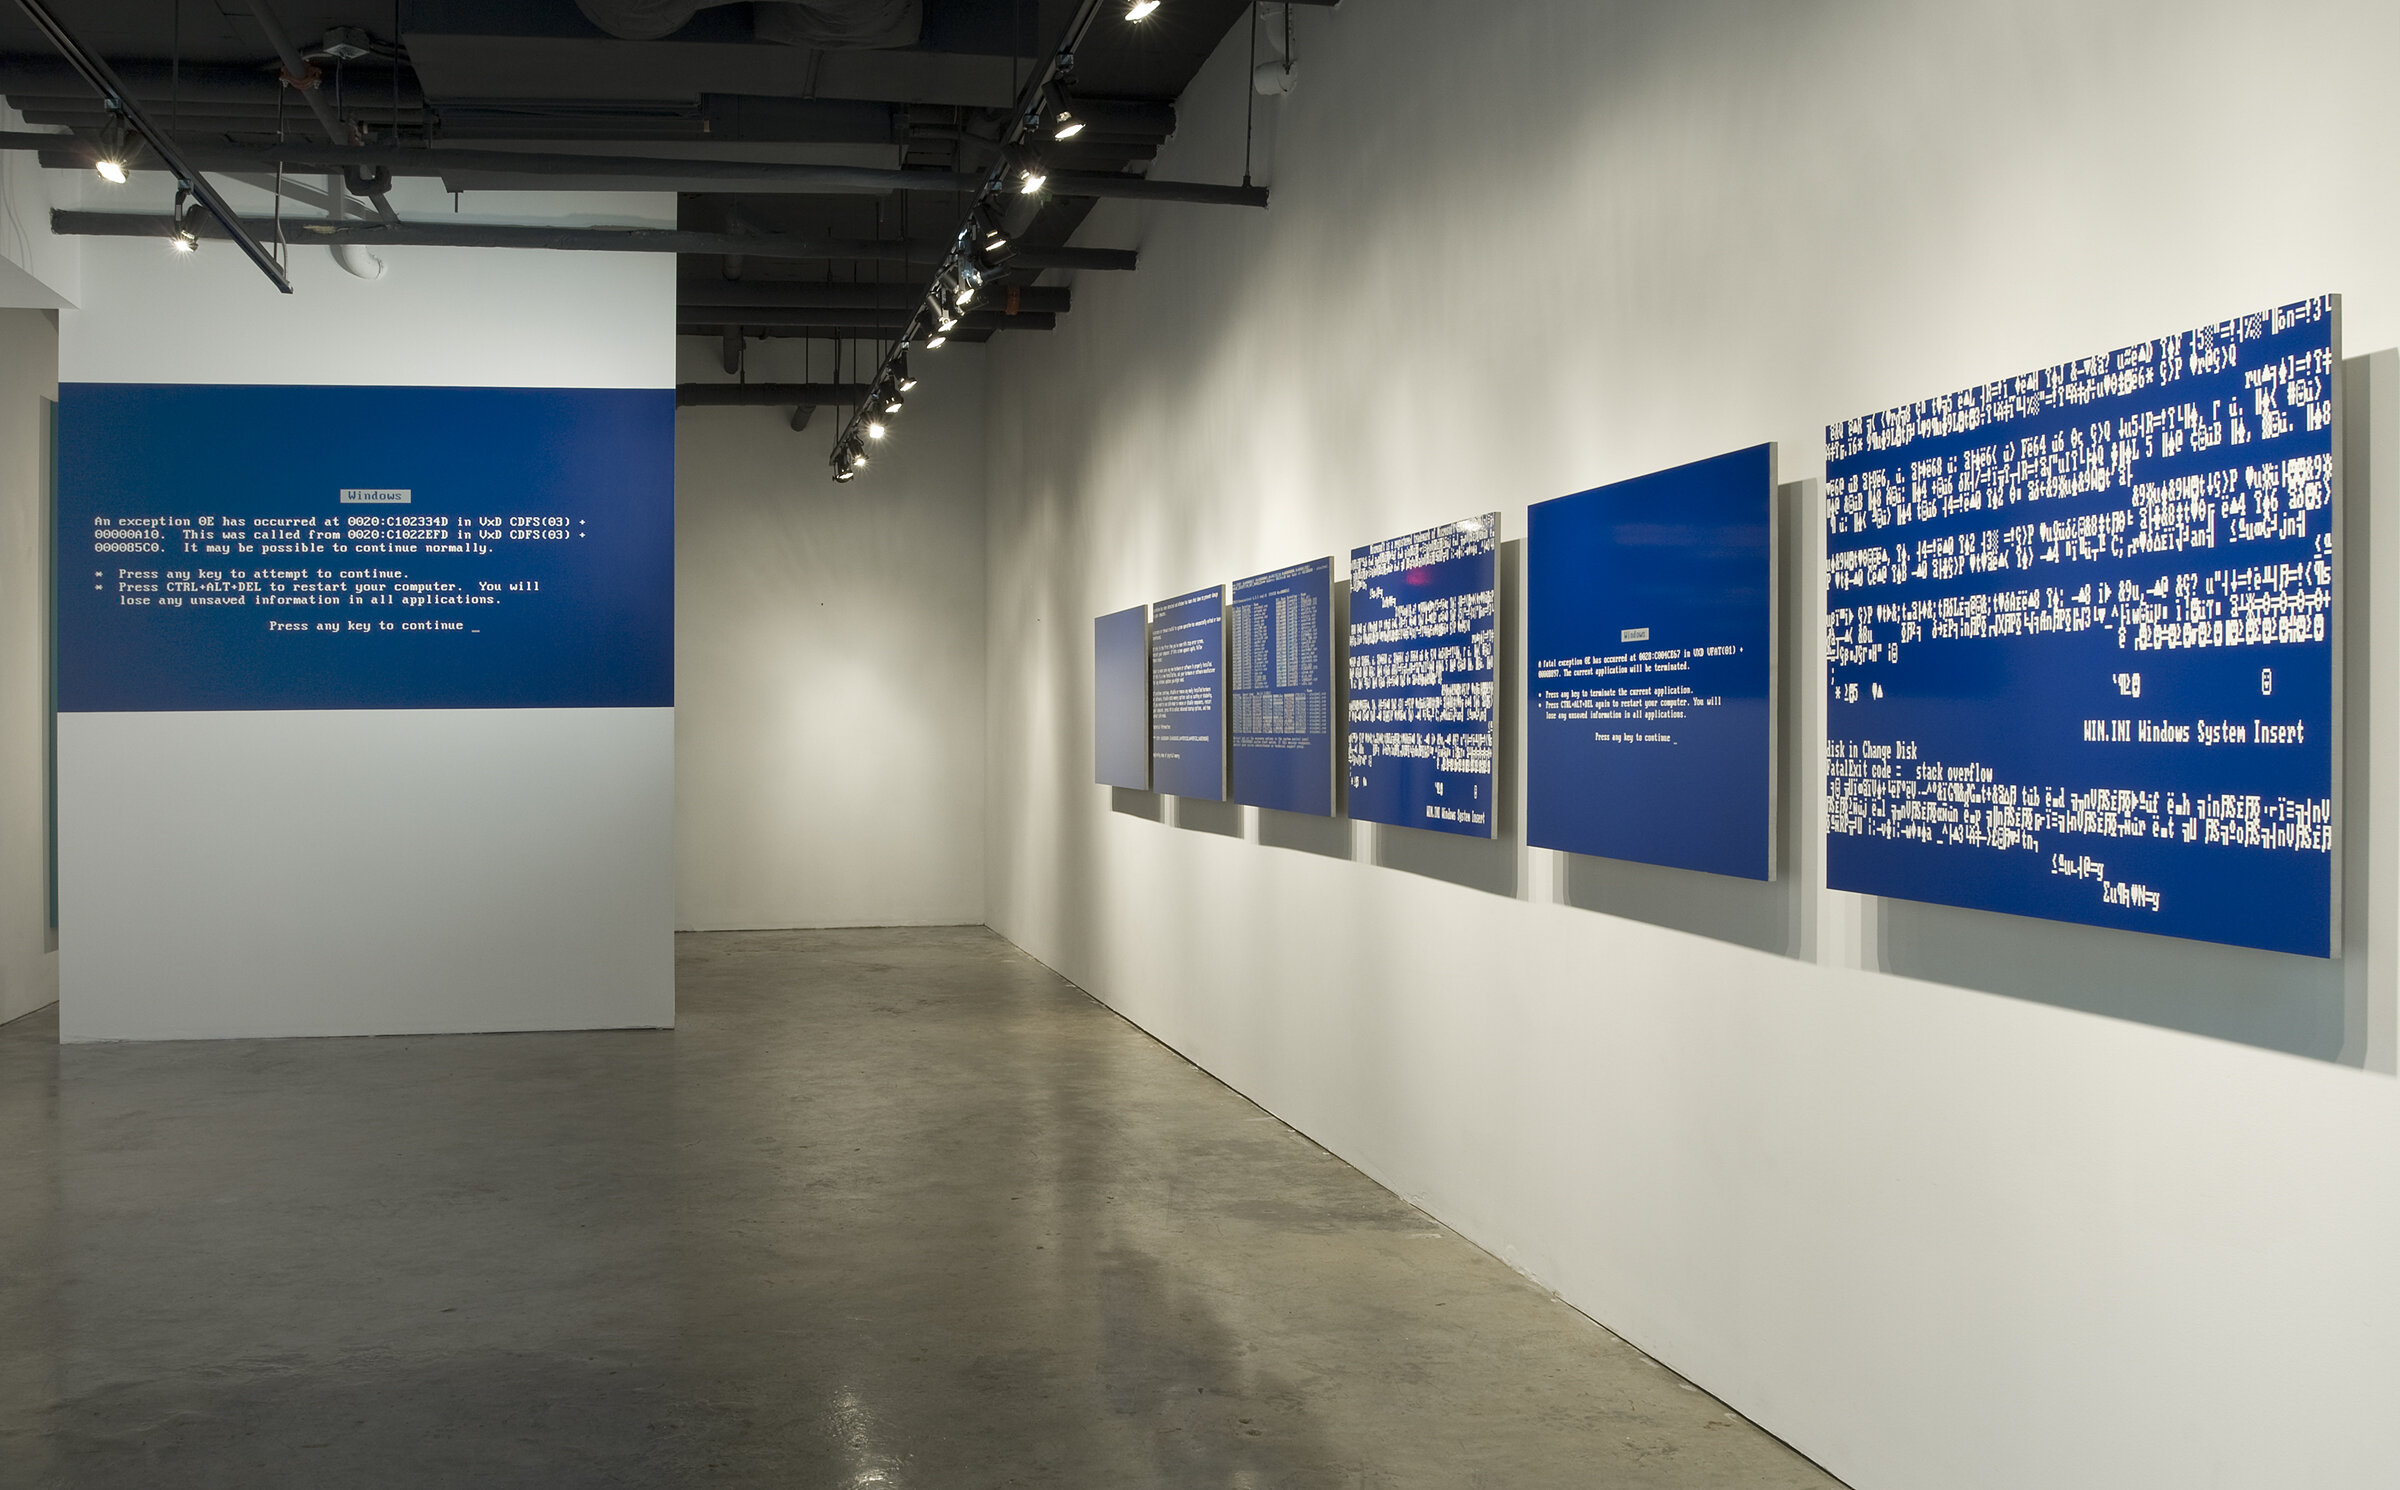 Michael Edward Miller  BSoD , 2014, spray paint on powder-coated, sandblasted, half-inch thick aluminum sheets